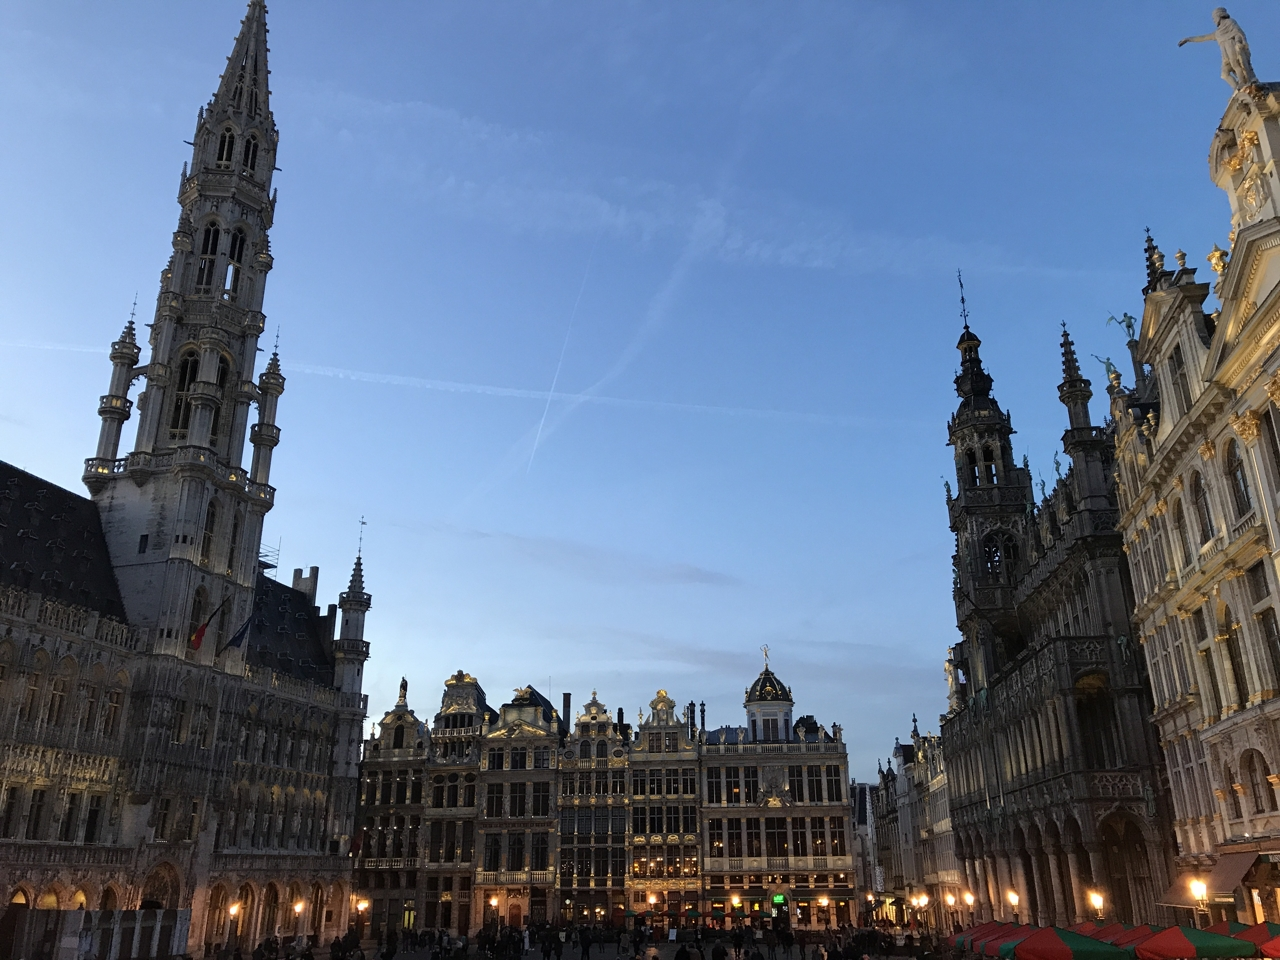 Grote Markt in Brussels at dawn